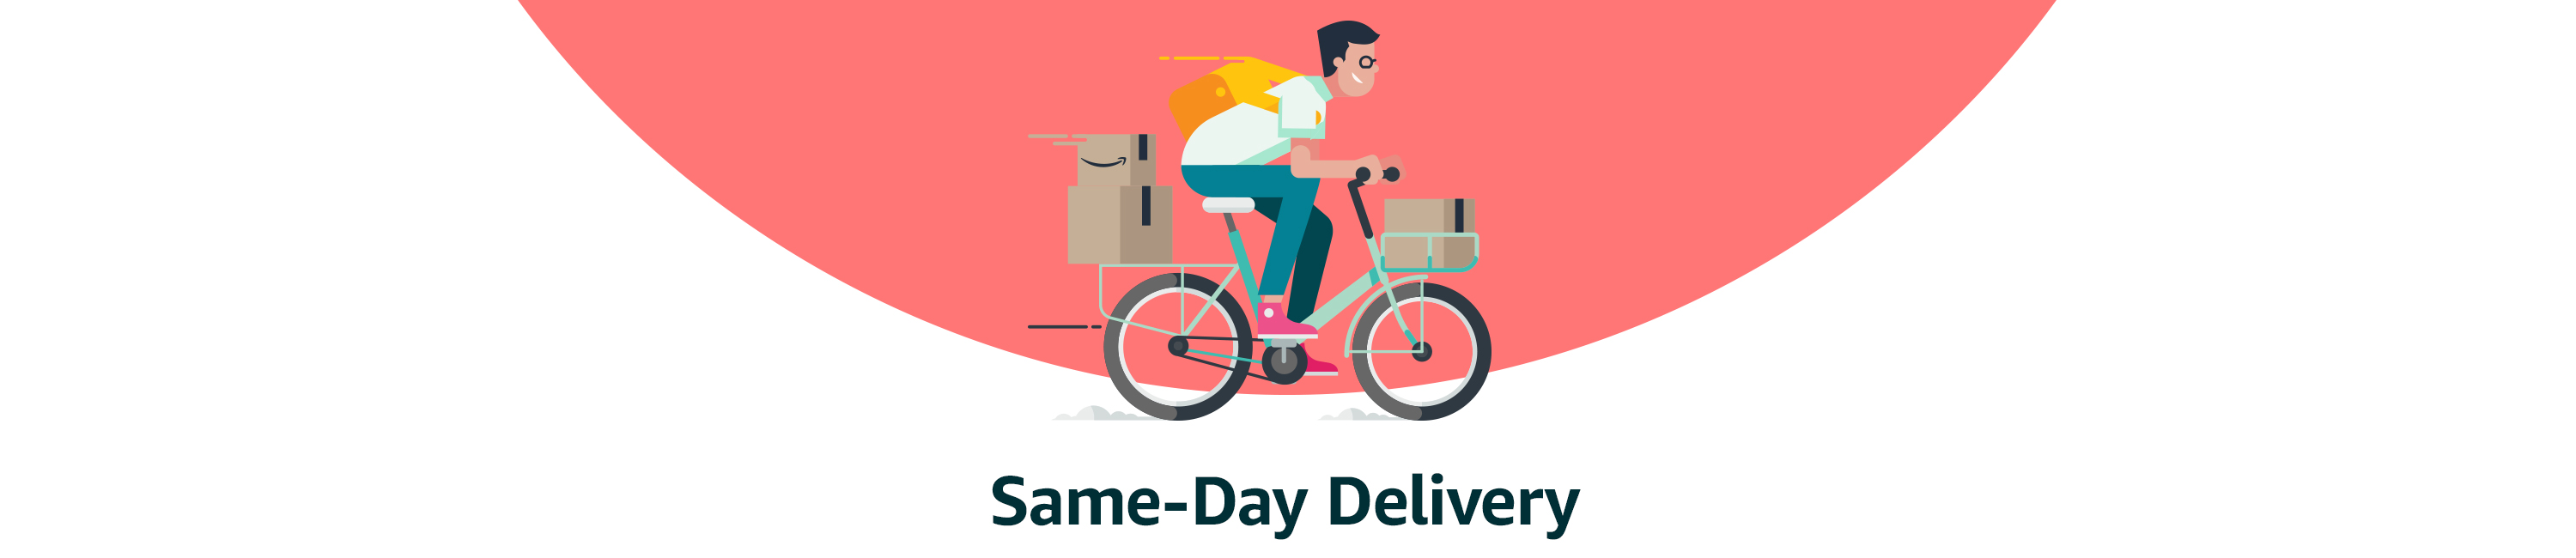 Same-Day Delivery in eligible areas